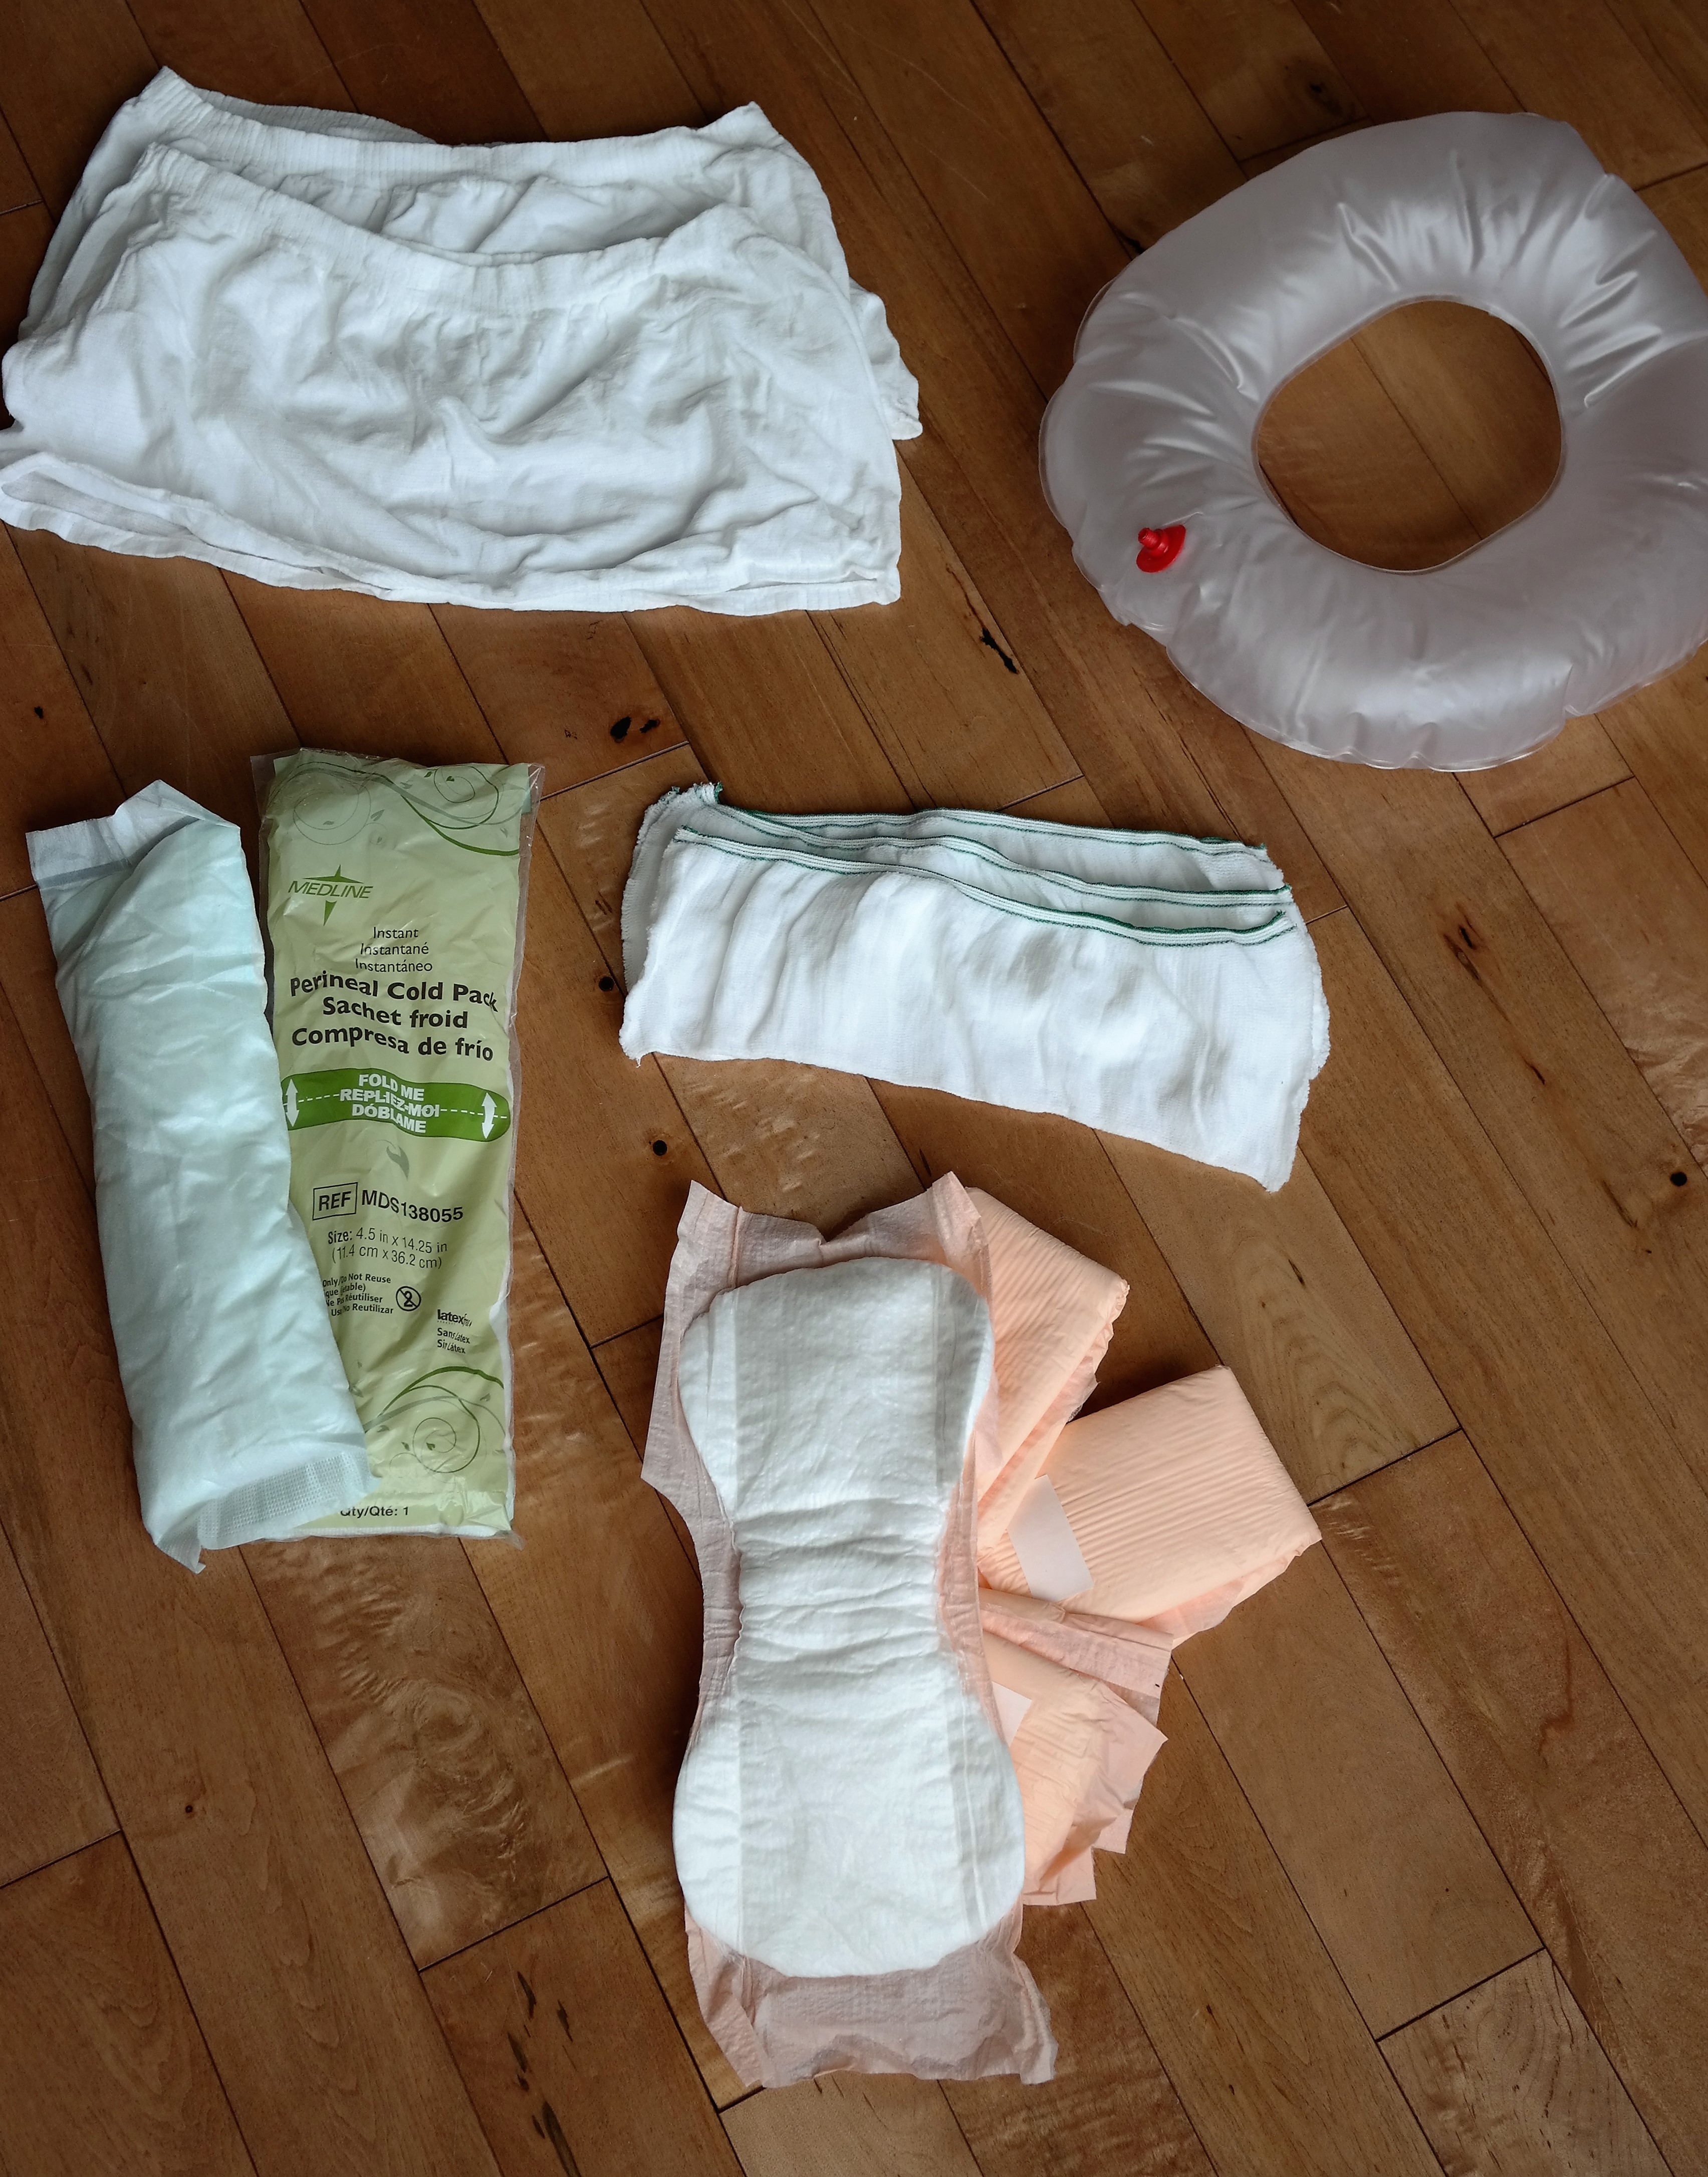 Items provided by hospital for postpartum care, Boyshort disposable panties, inflatable donut seat cushion, Perineal Cold Pack, rectangle disposable panties, peach pad